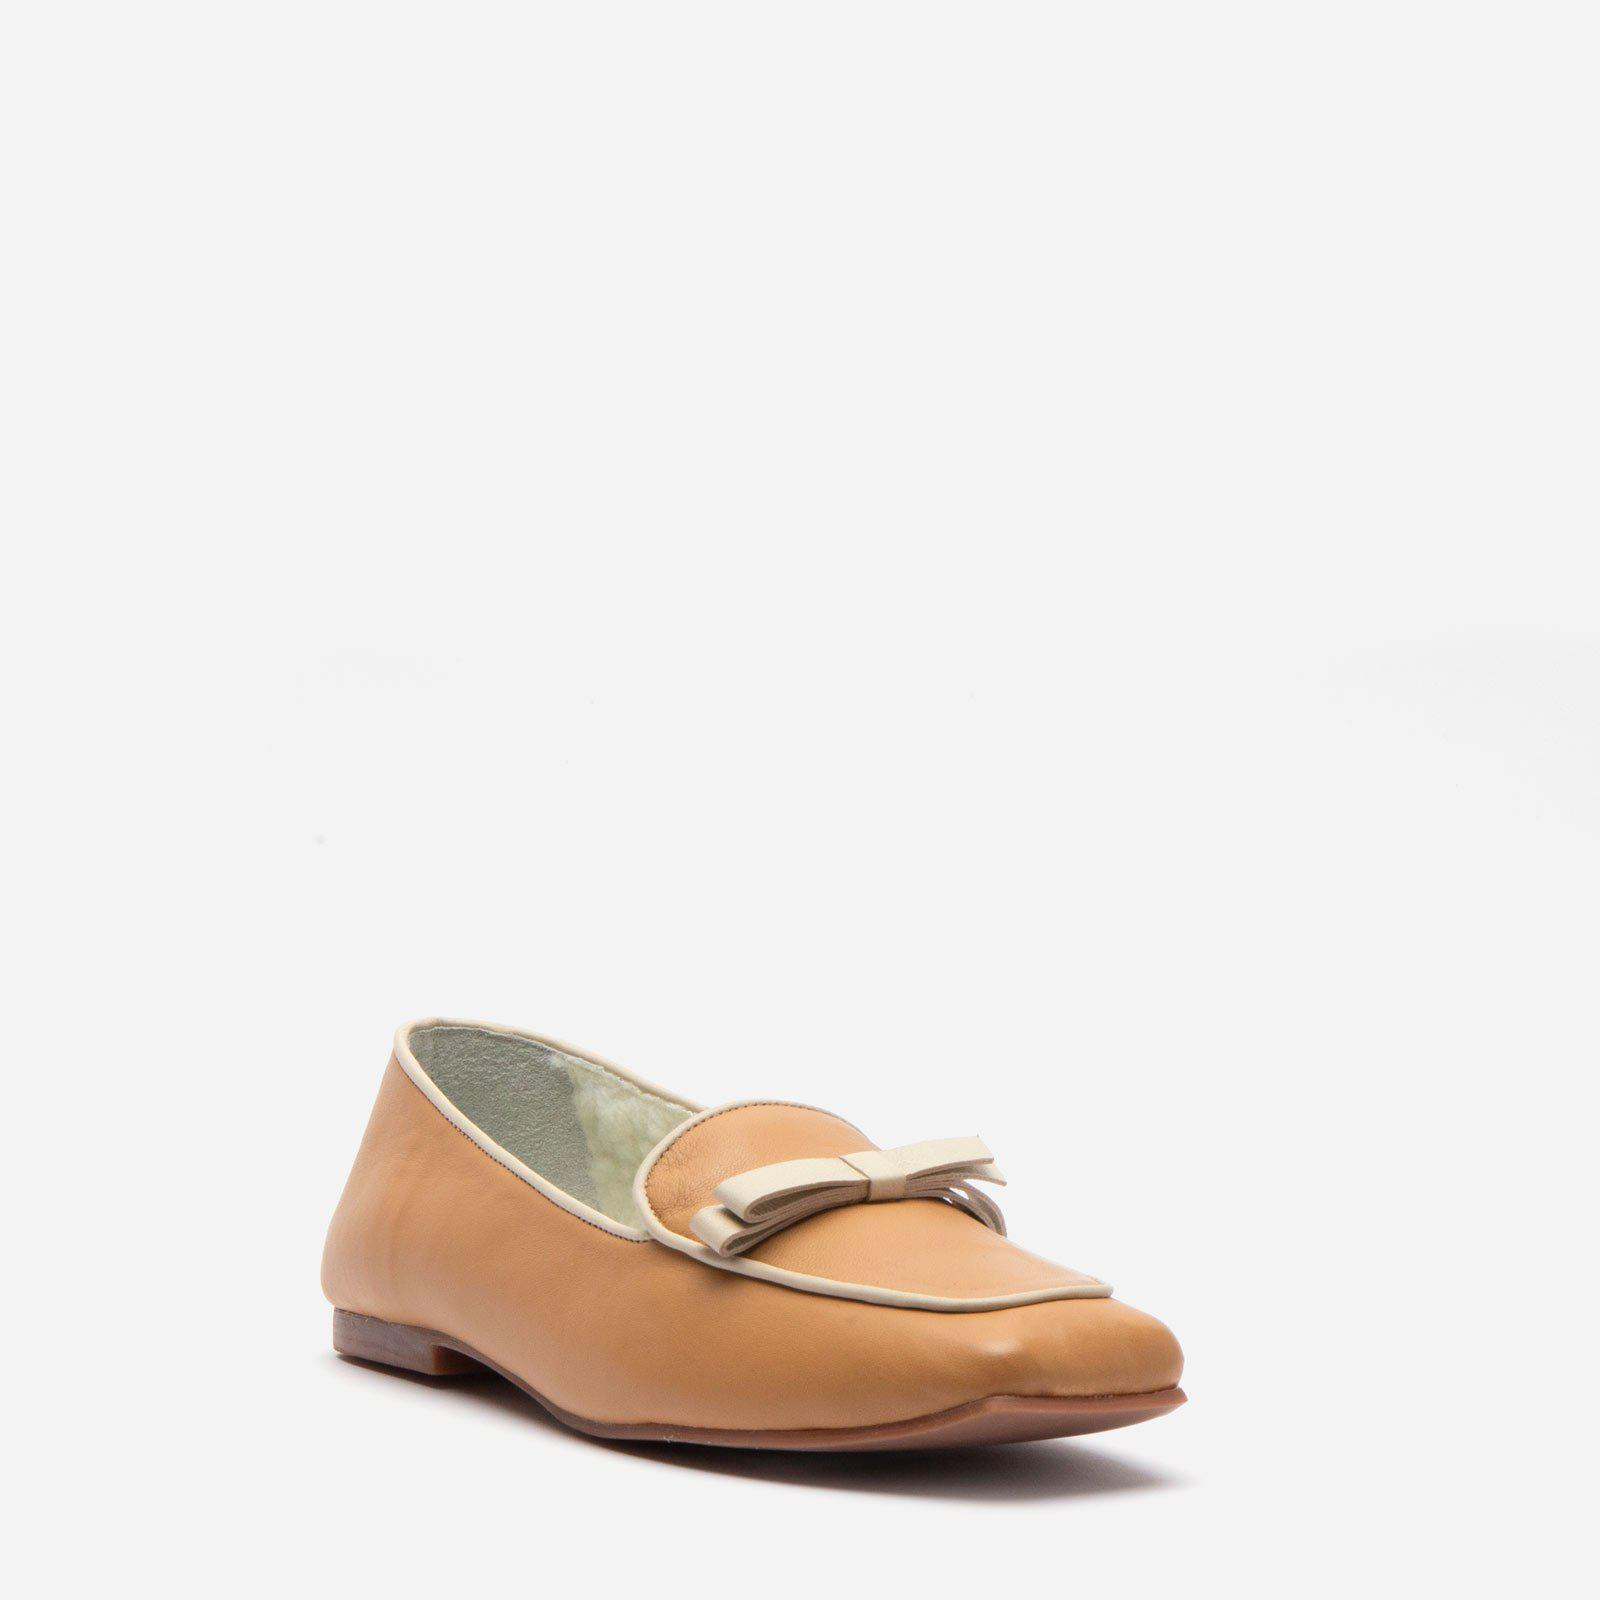 Suzanne Cozy Loafer Nappa Faux Shearling Camel 2